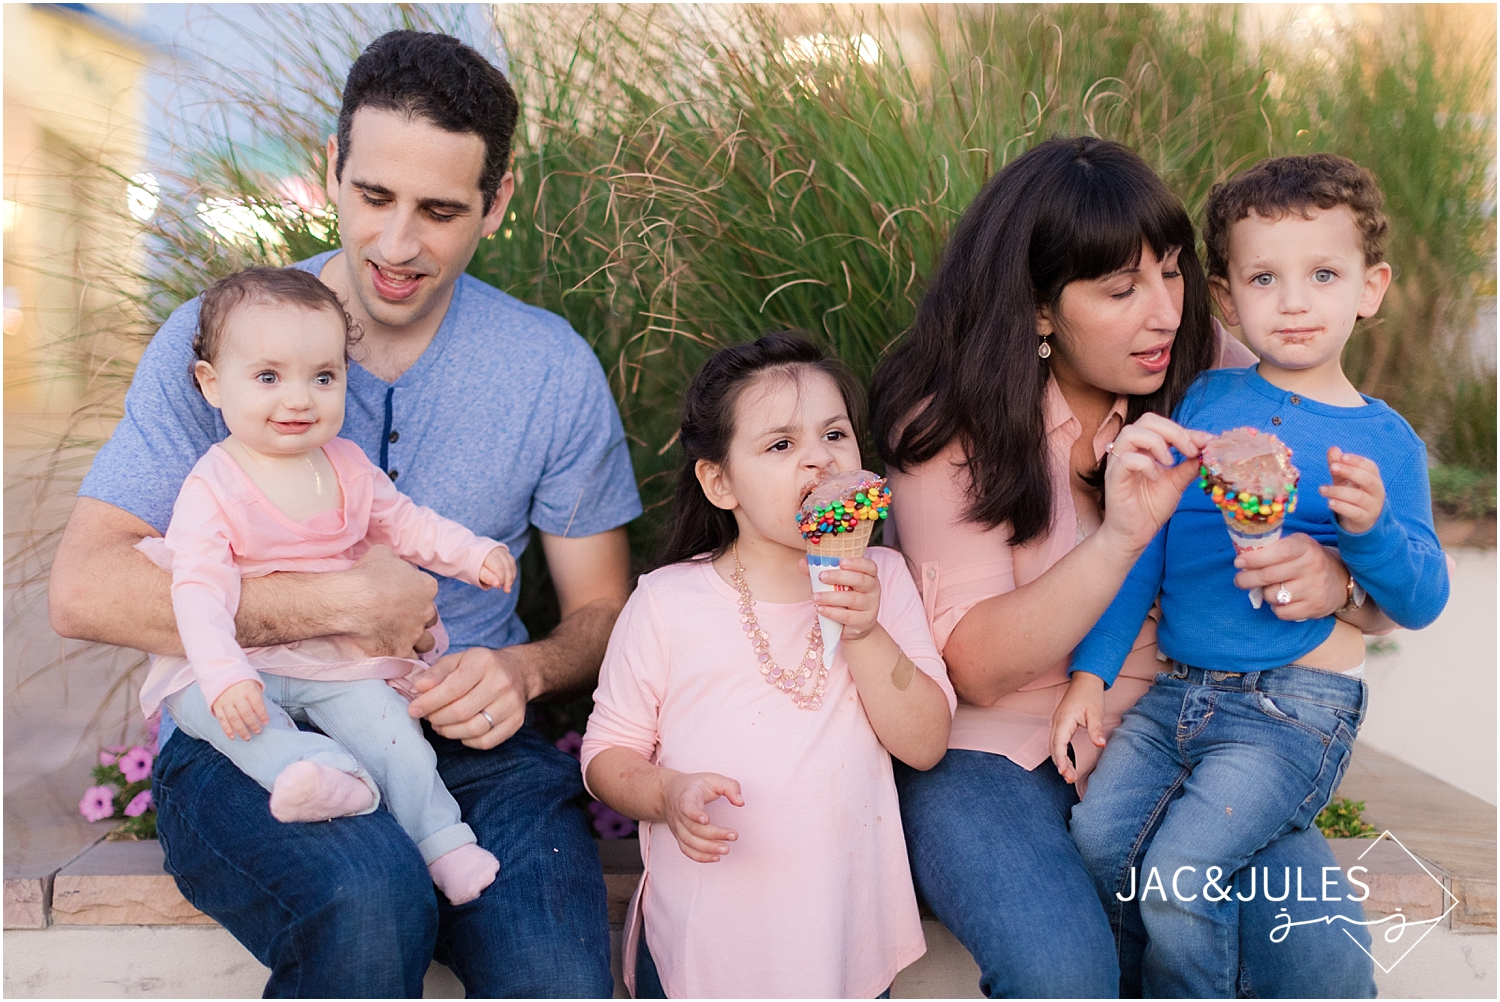 jacnjules photographs lifestyle pictures for family eating ice-cream in point pleasant nj